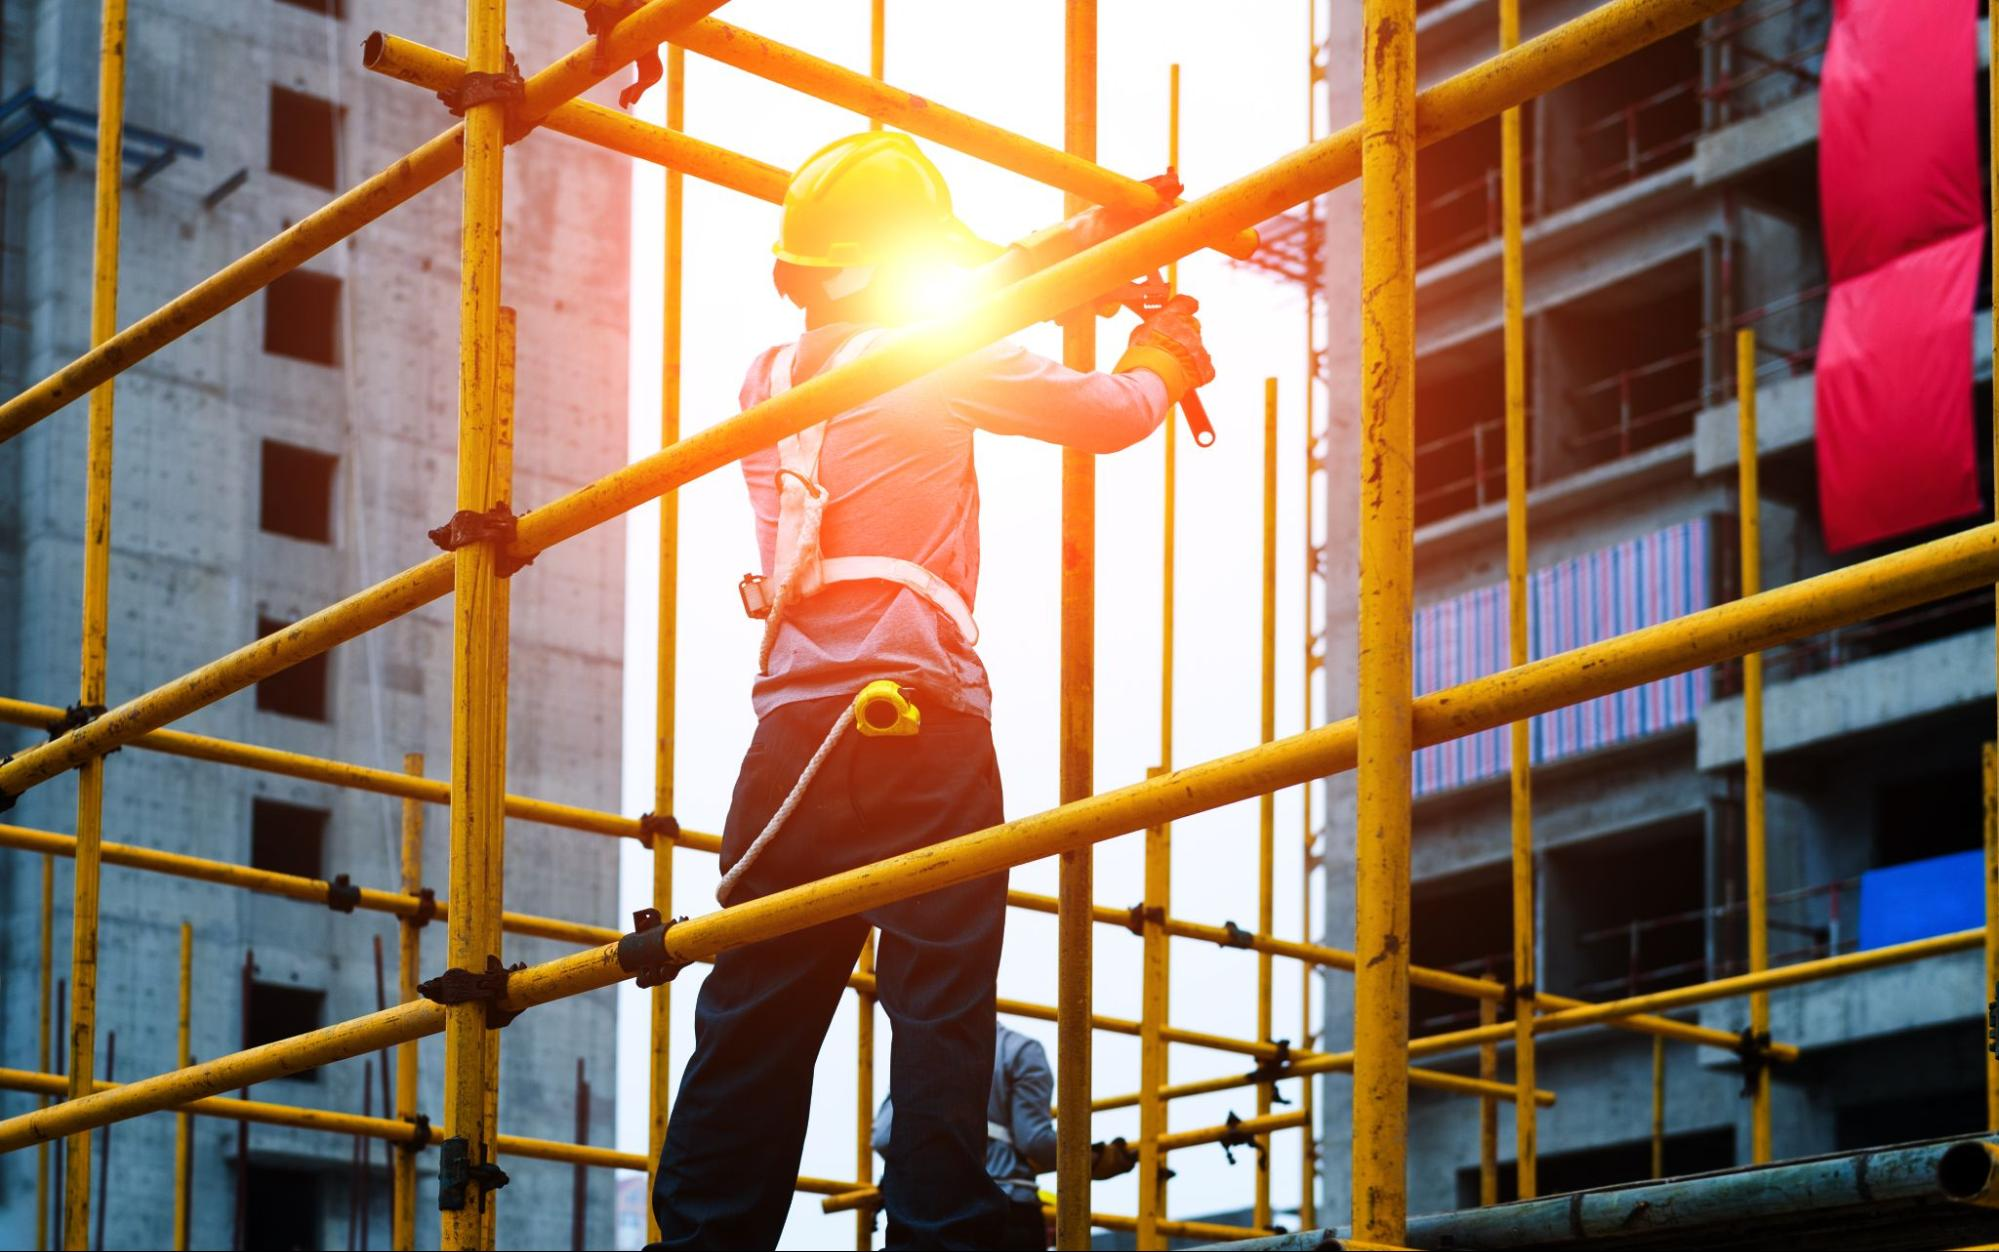 An employee of a scaffolding company, setting up scaffolding